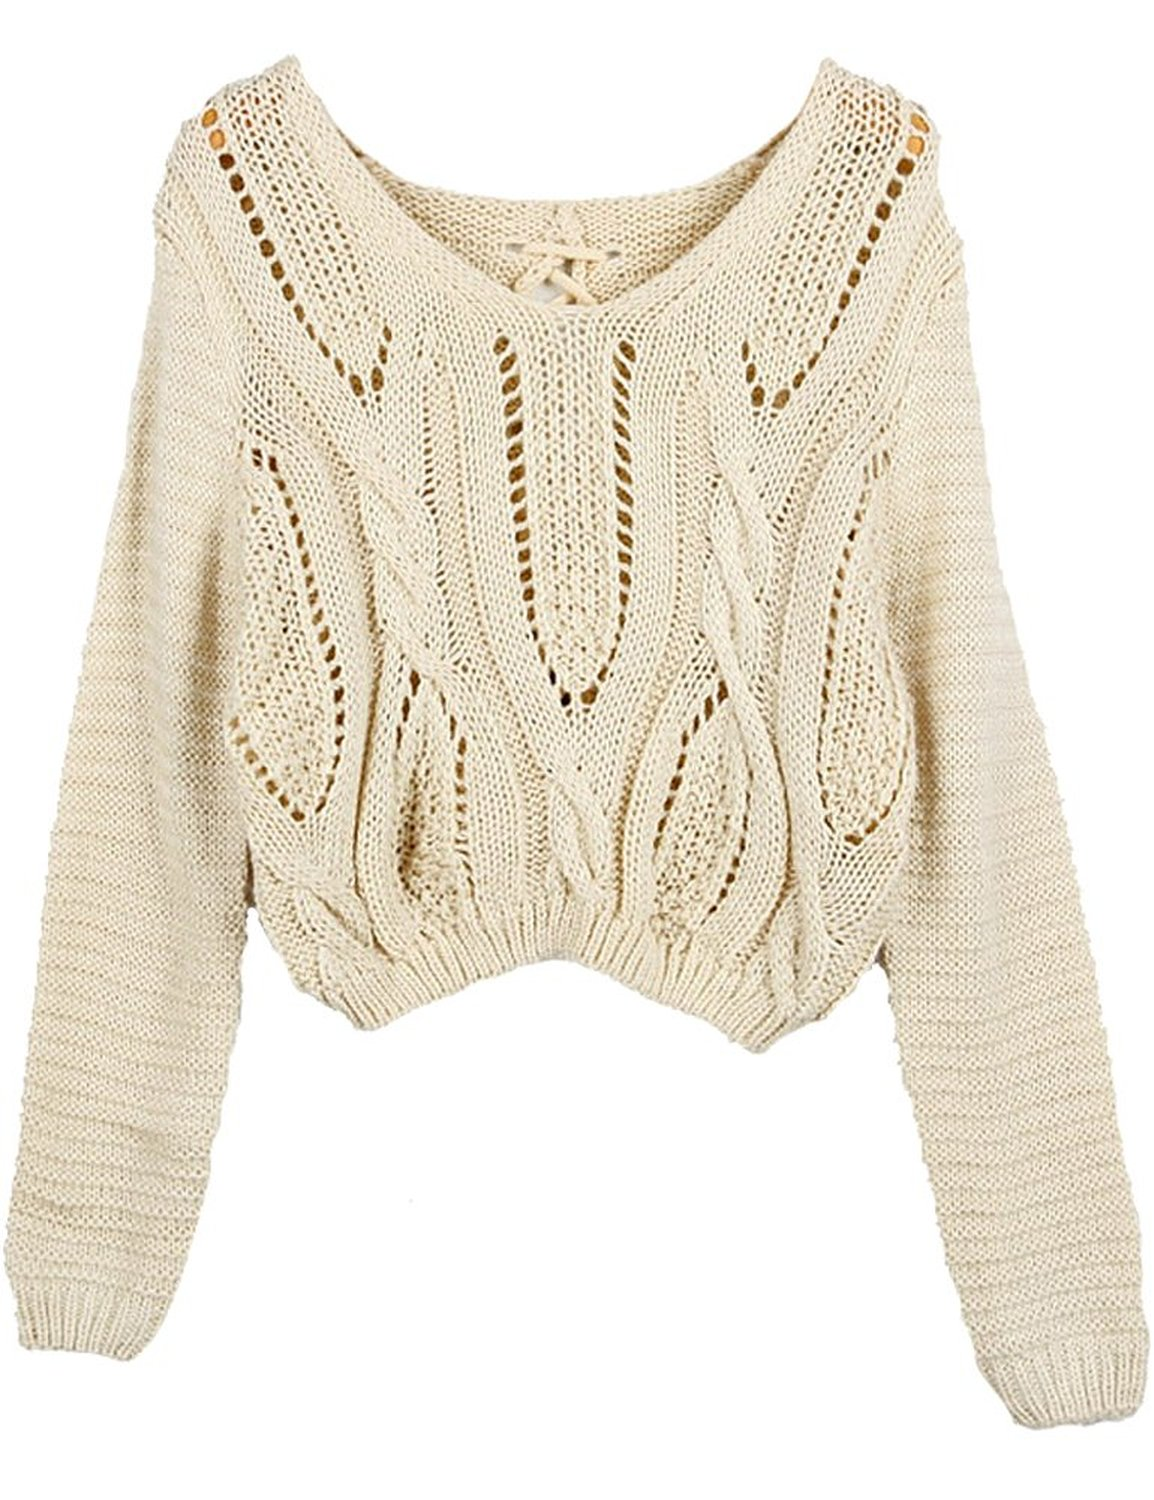 Women Eyelet Cable Knit Lace Up Crop Long Sleeve Sweater Crop Tops ...